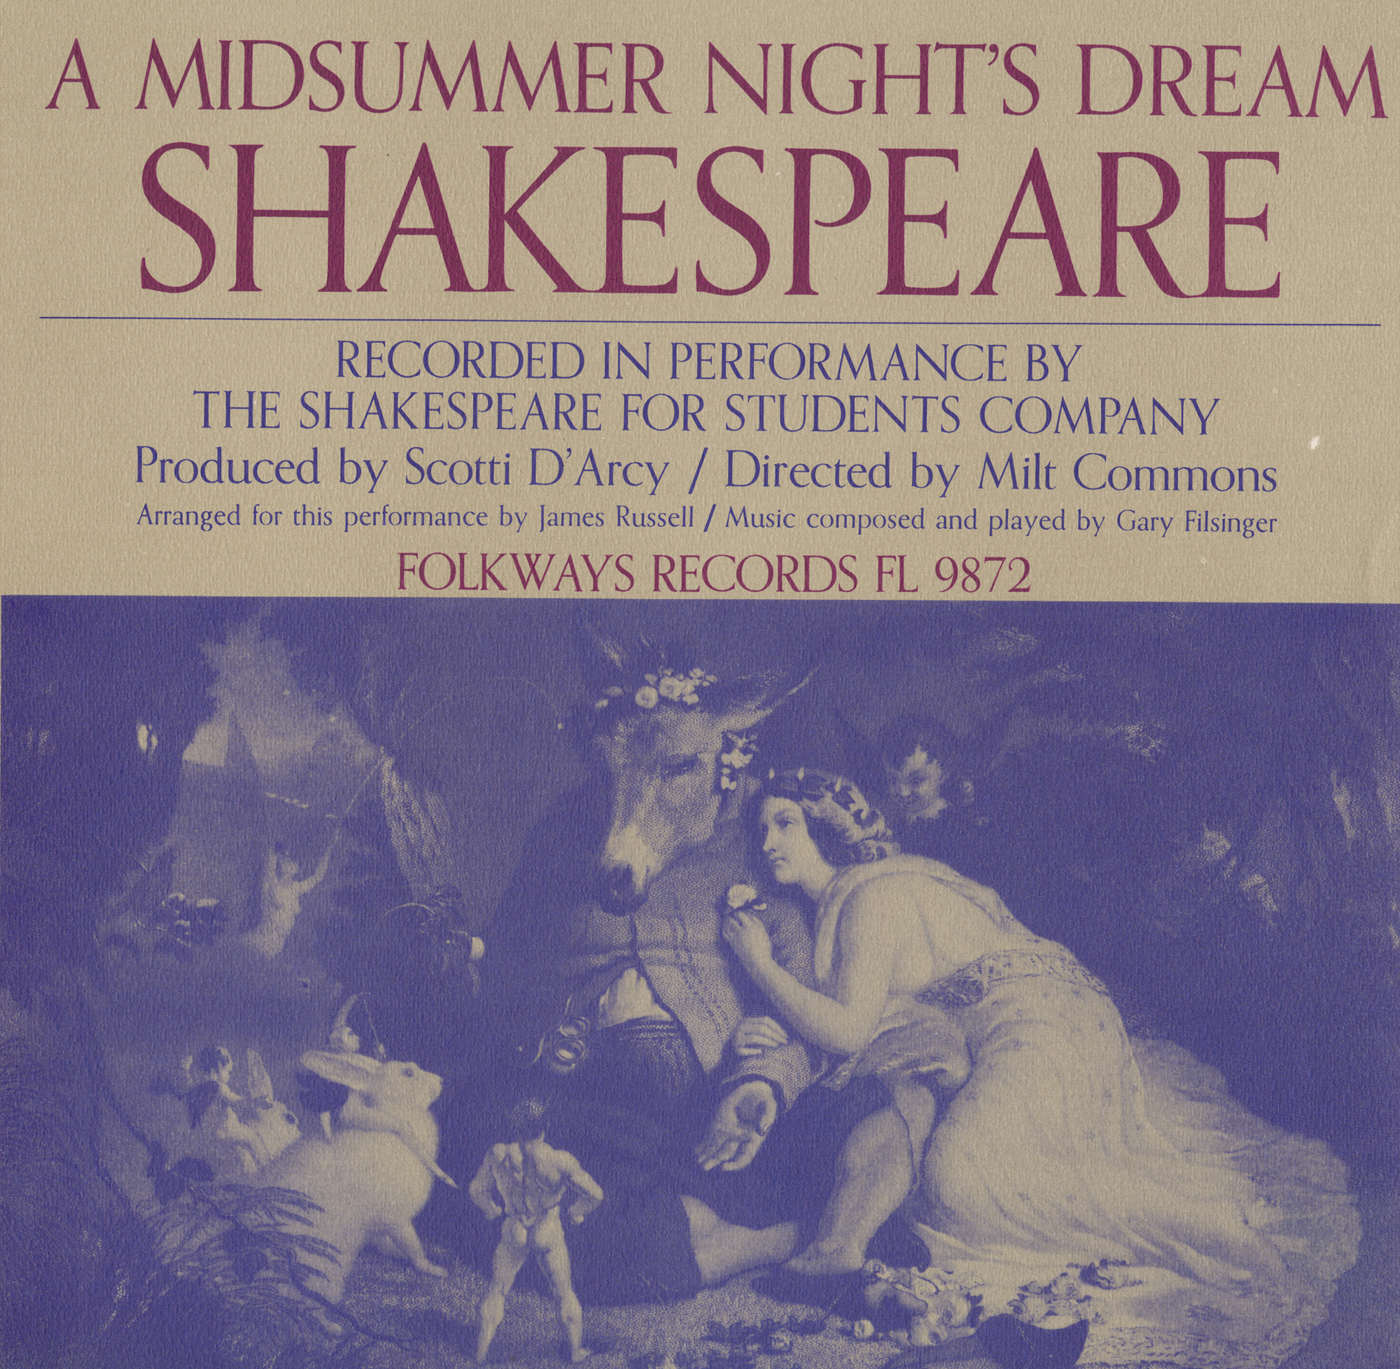 an overview of the themes in a midsummer nights dream a play by william shakespeare Amazoncom: a midsummer night's dream (sparknotes literature guide) (sparknotes literature guide series) (9781586634049): william shakespeare, sparknotes: books.